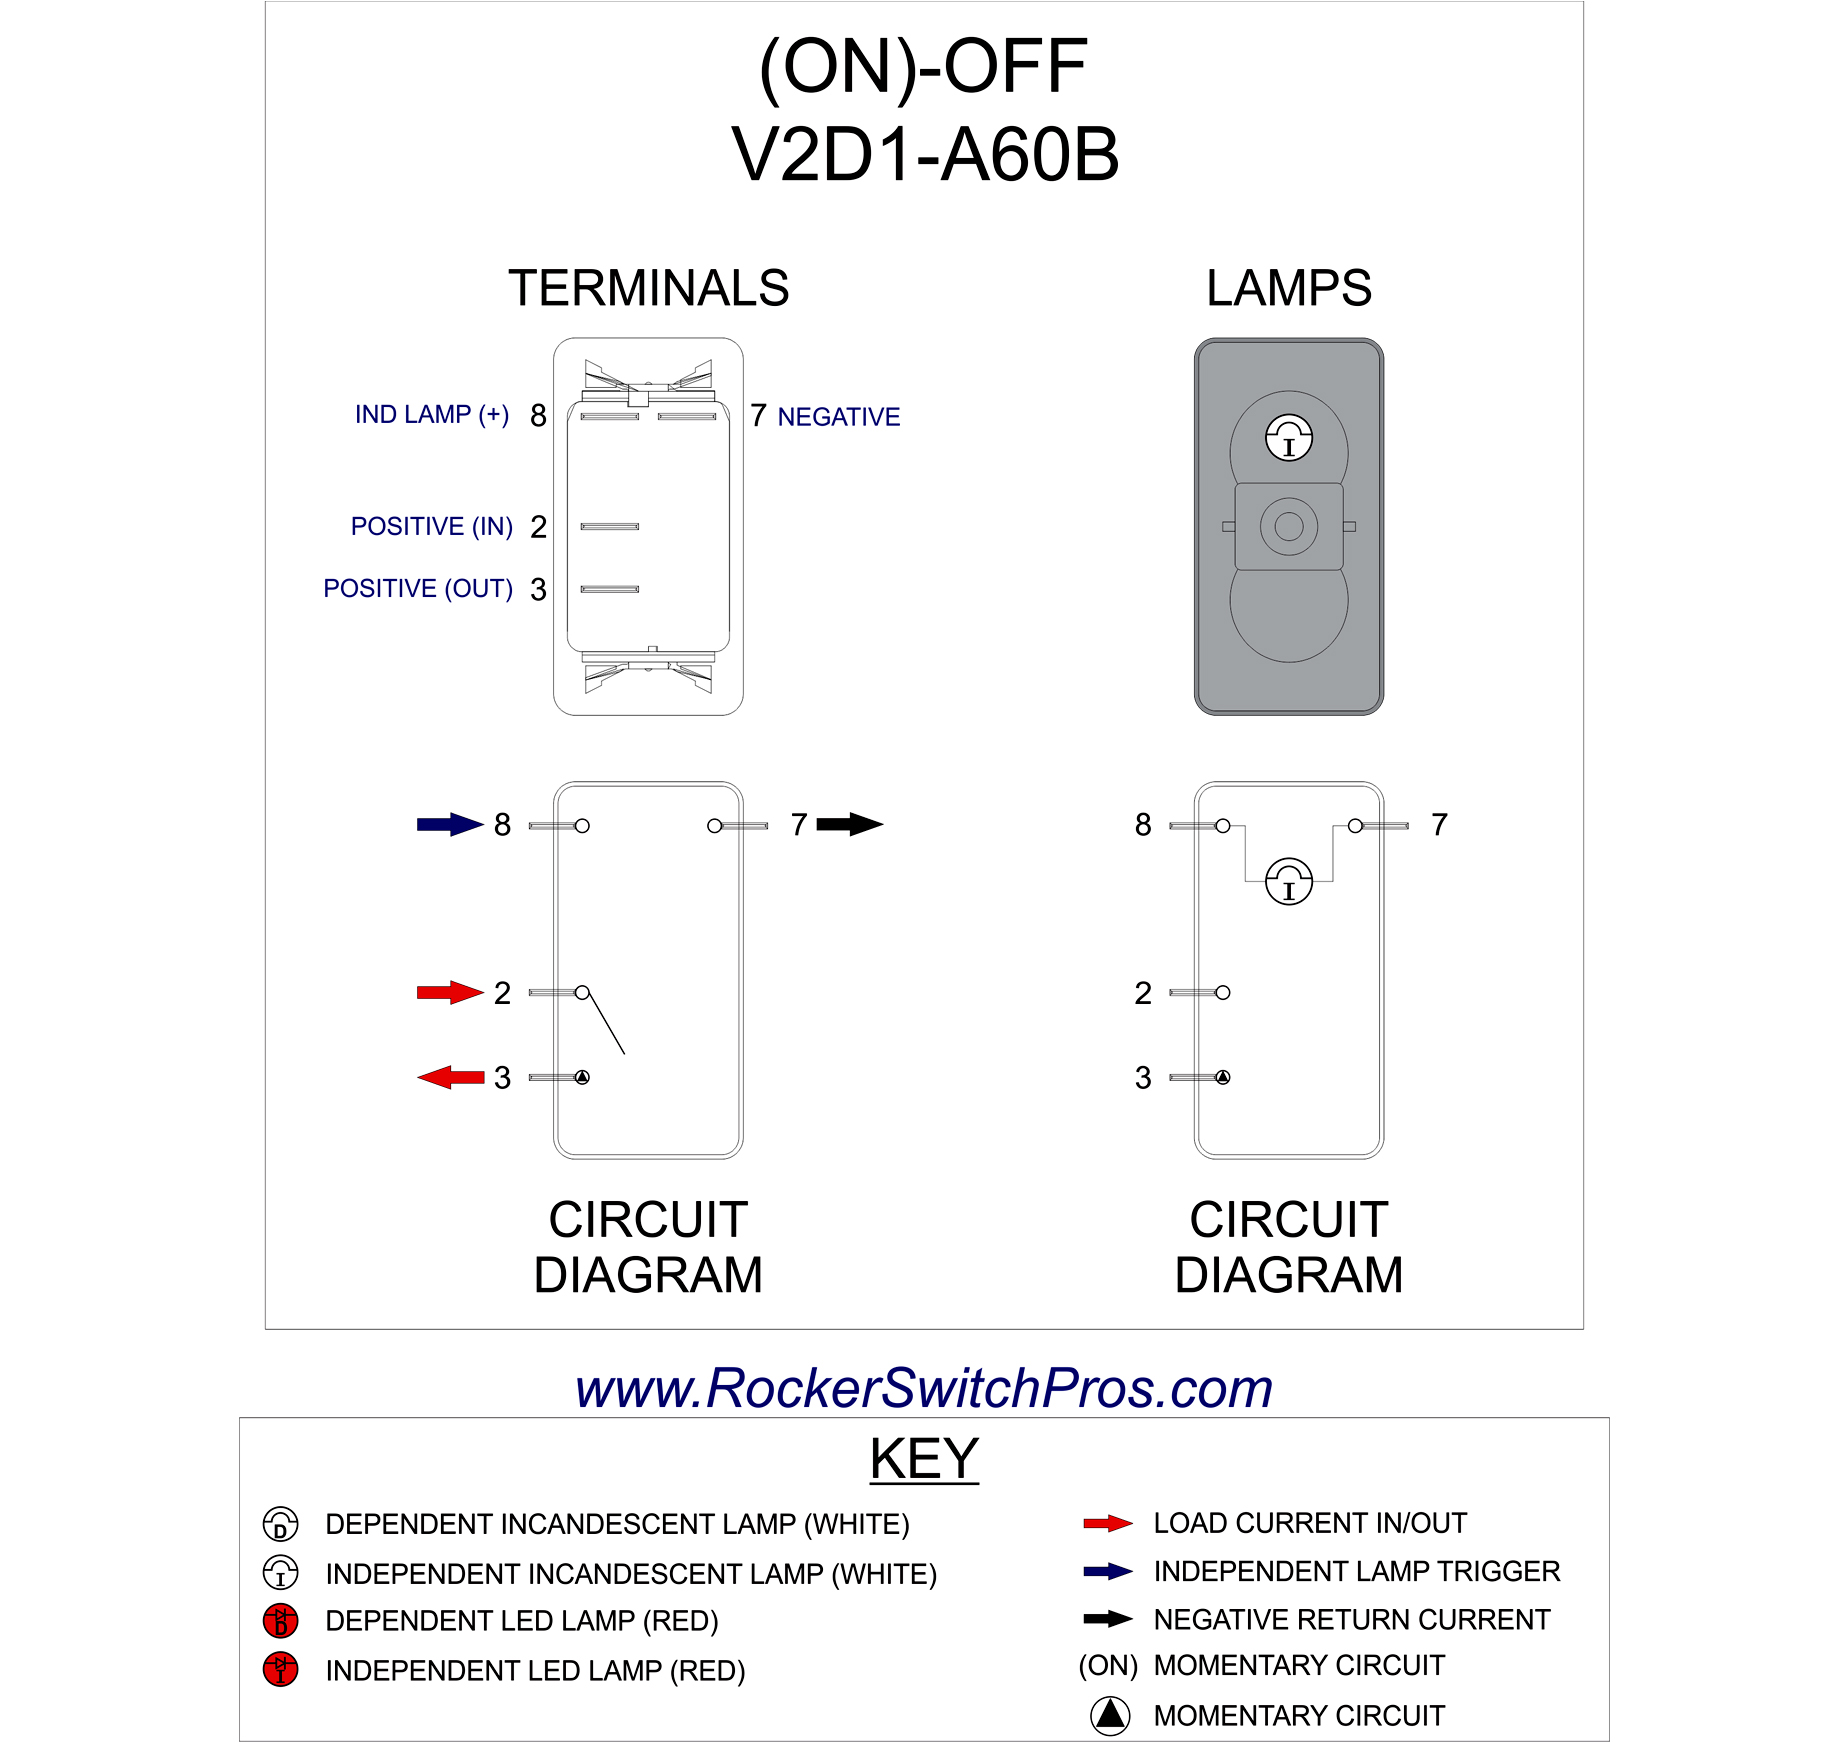 spst switch wiring diagram 12 volt winch control rocker on off 1 ind lamp